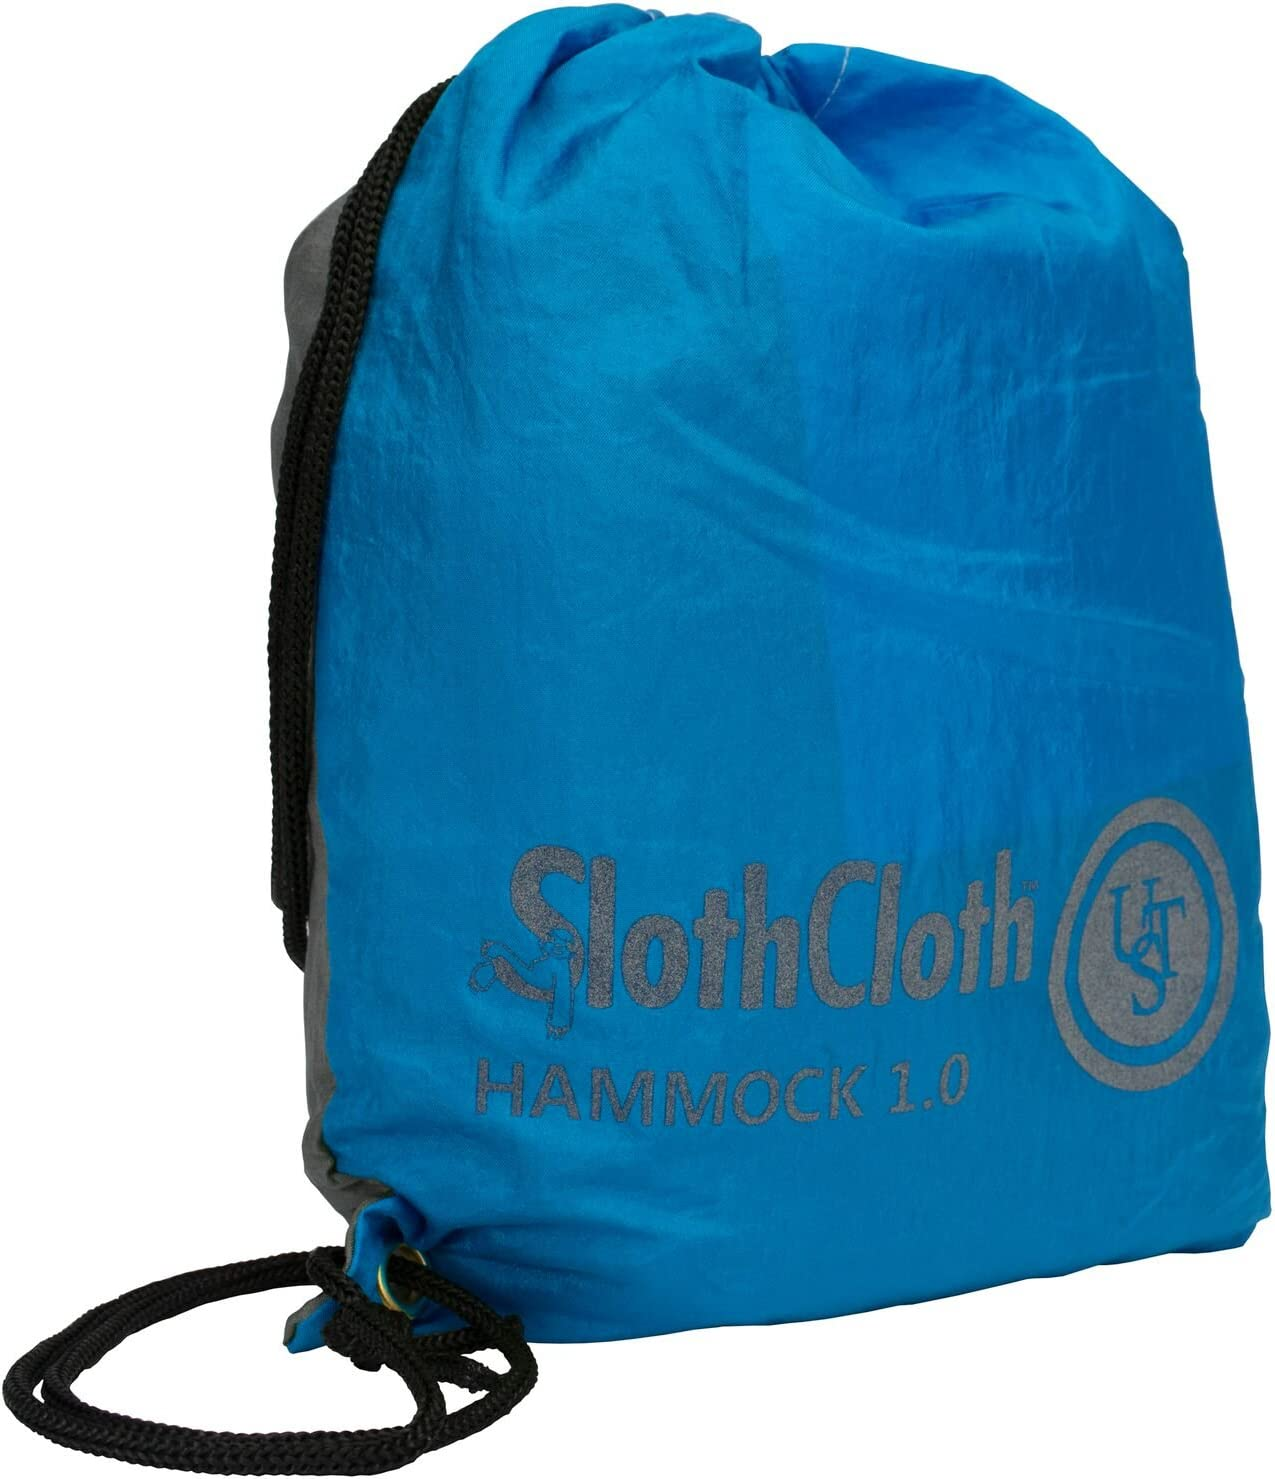 Breathable Mesh and Attached Travel Bag for Camping Backpacking and Outdoor Survival UST SlothCloth 1.0 Single Hammock with Portable Lightweight Design